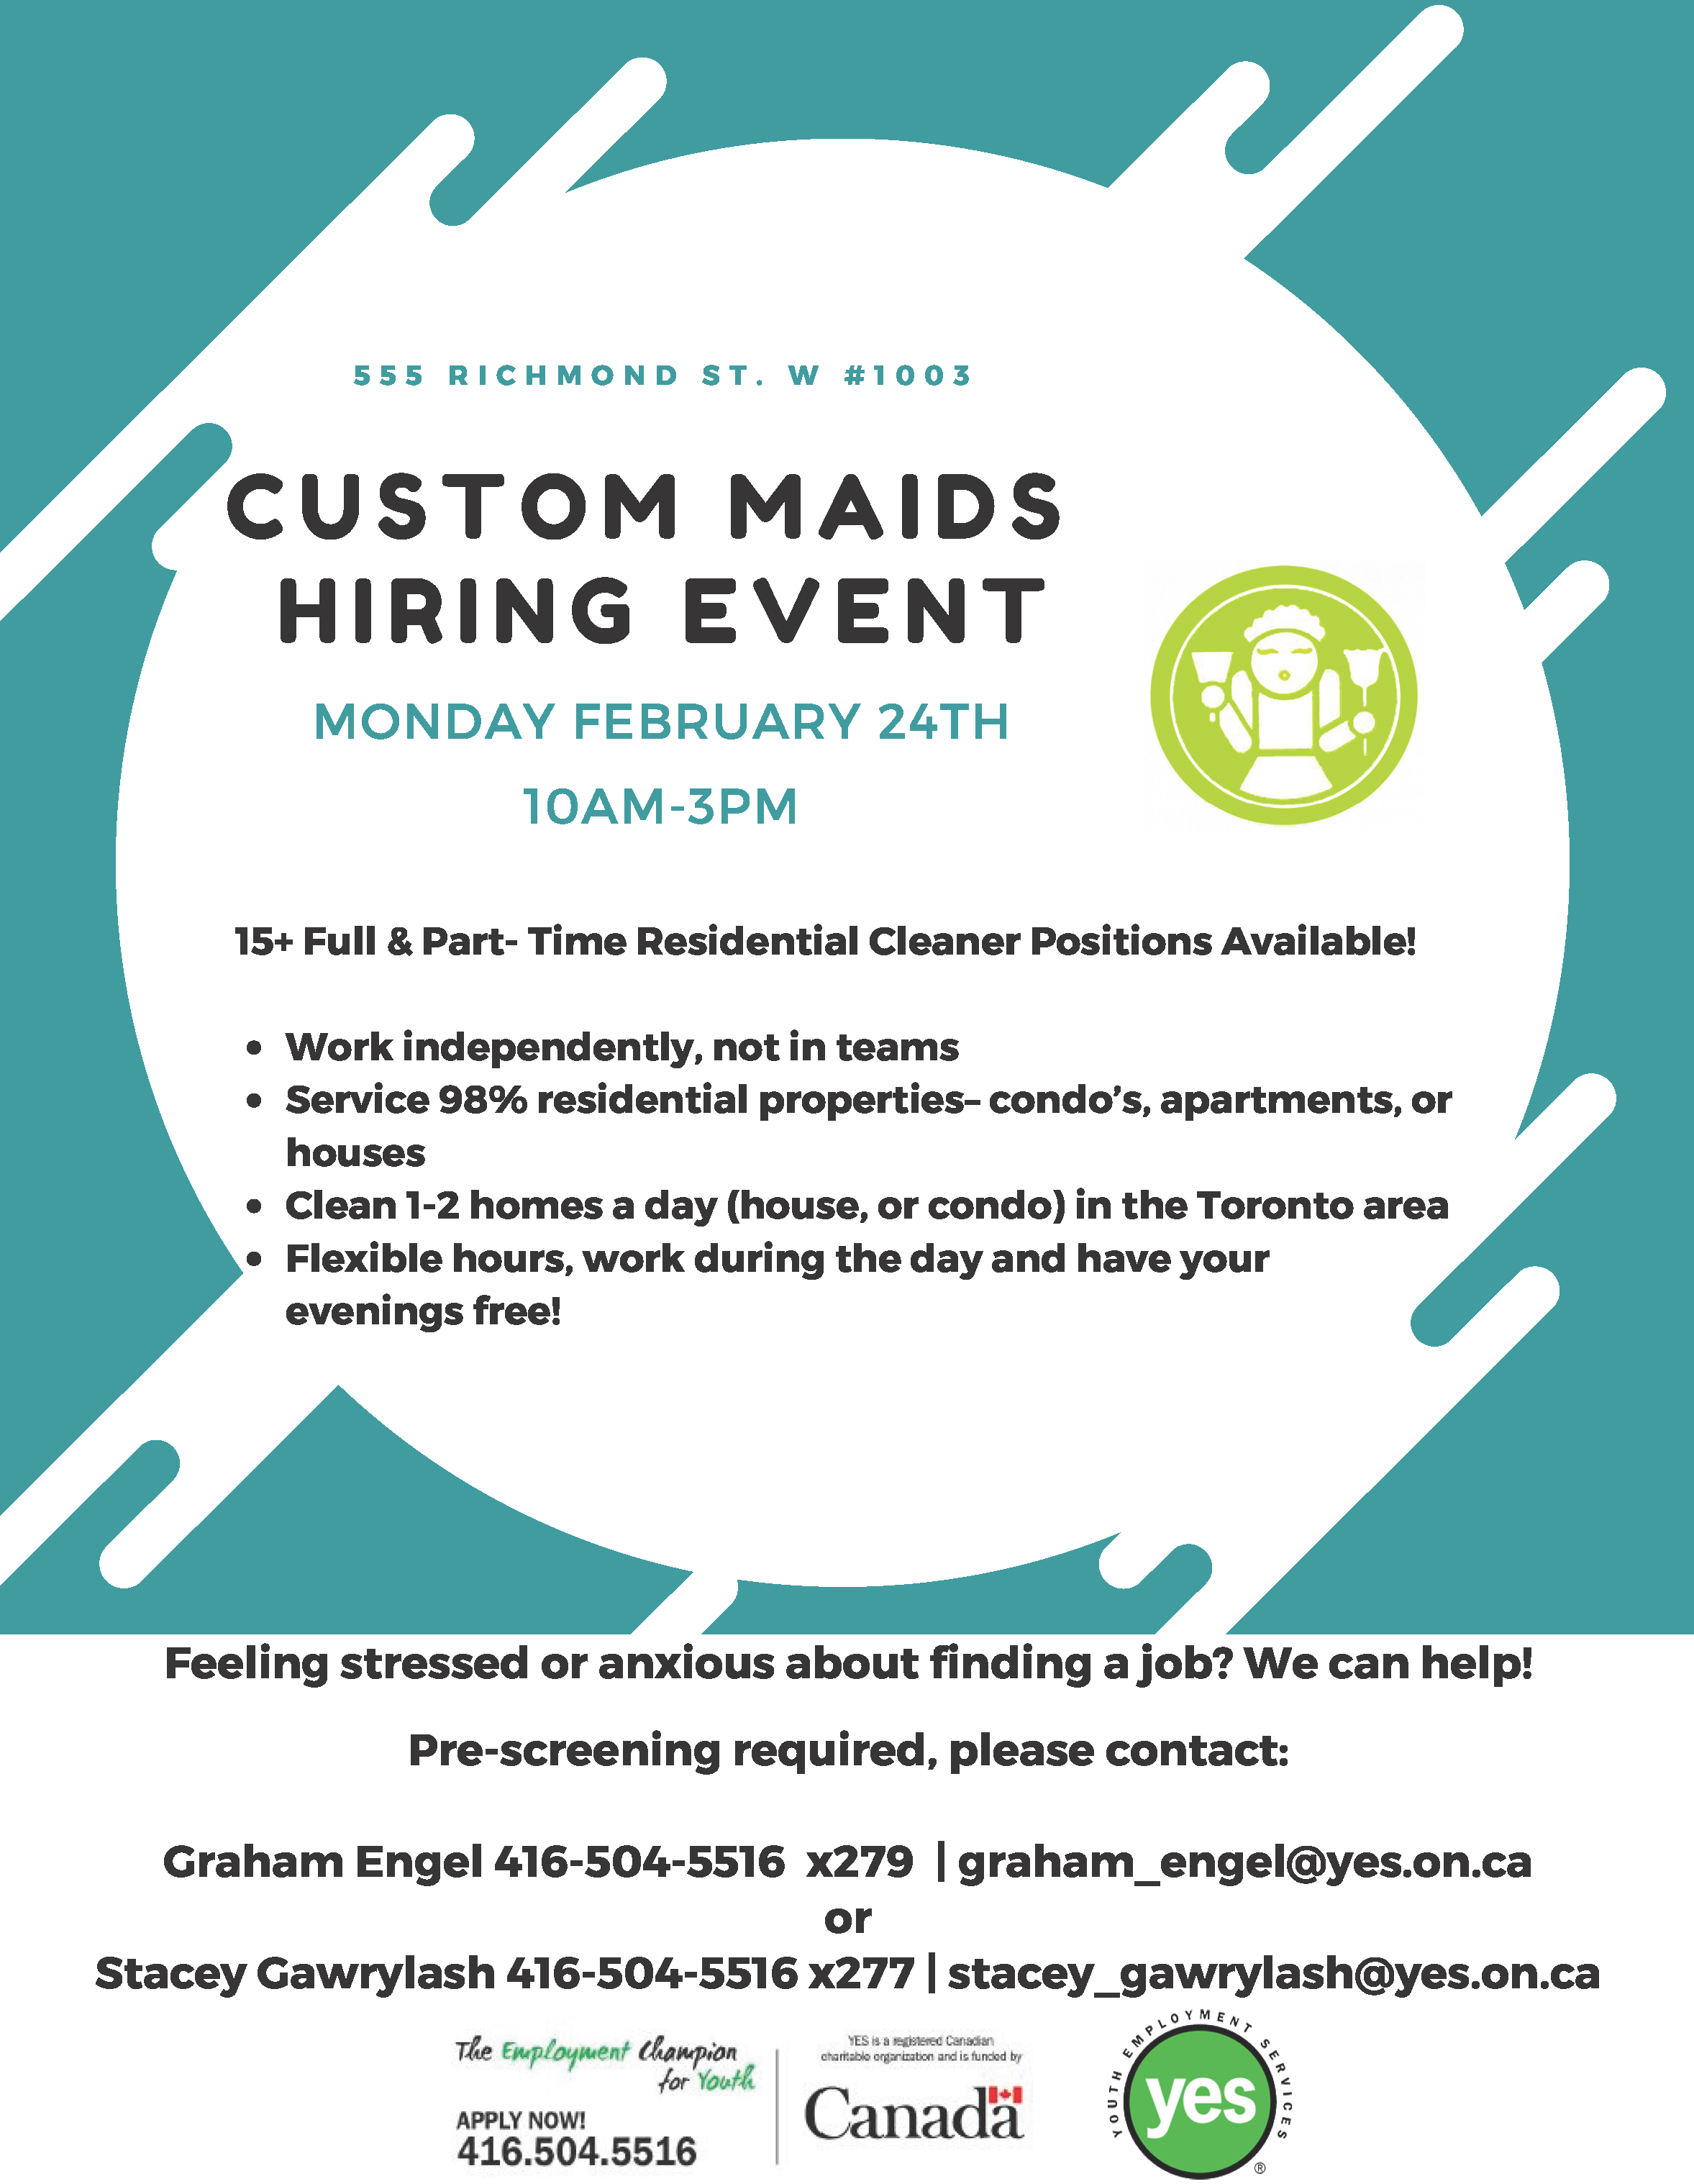 Custom Maids Hiring Event @ Youth Employment Services